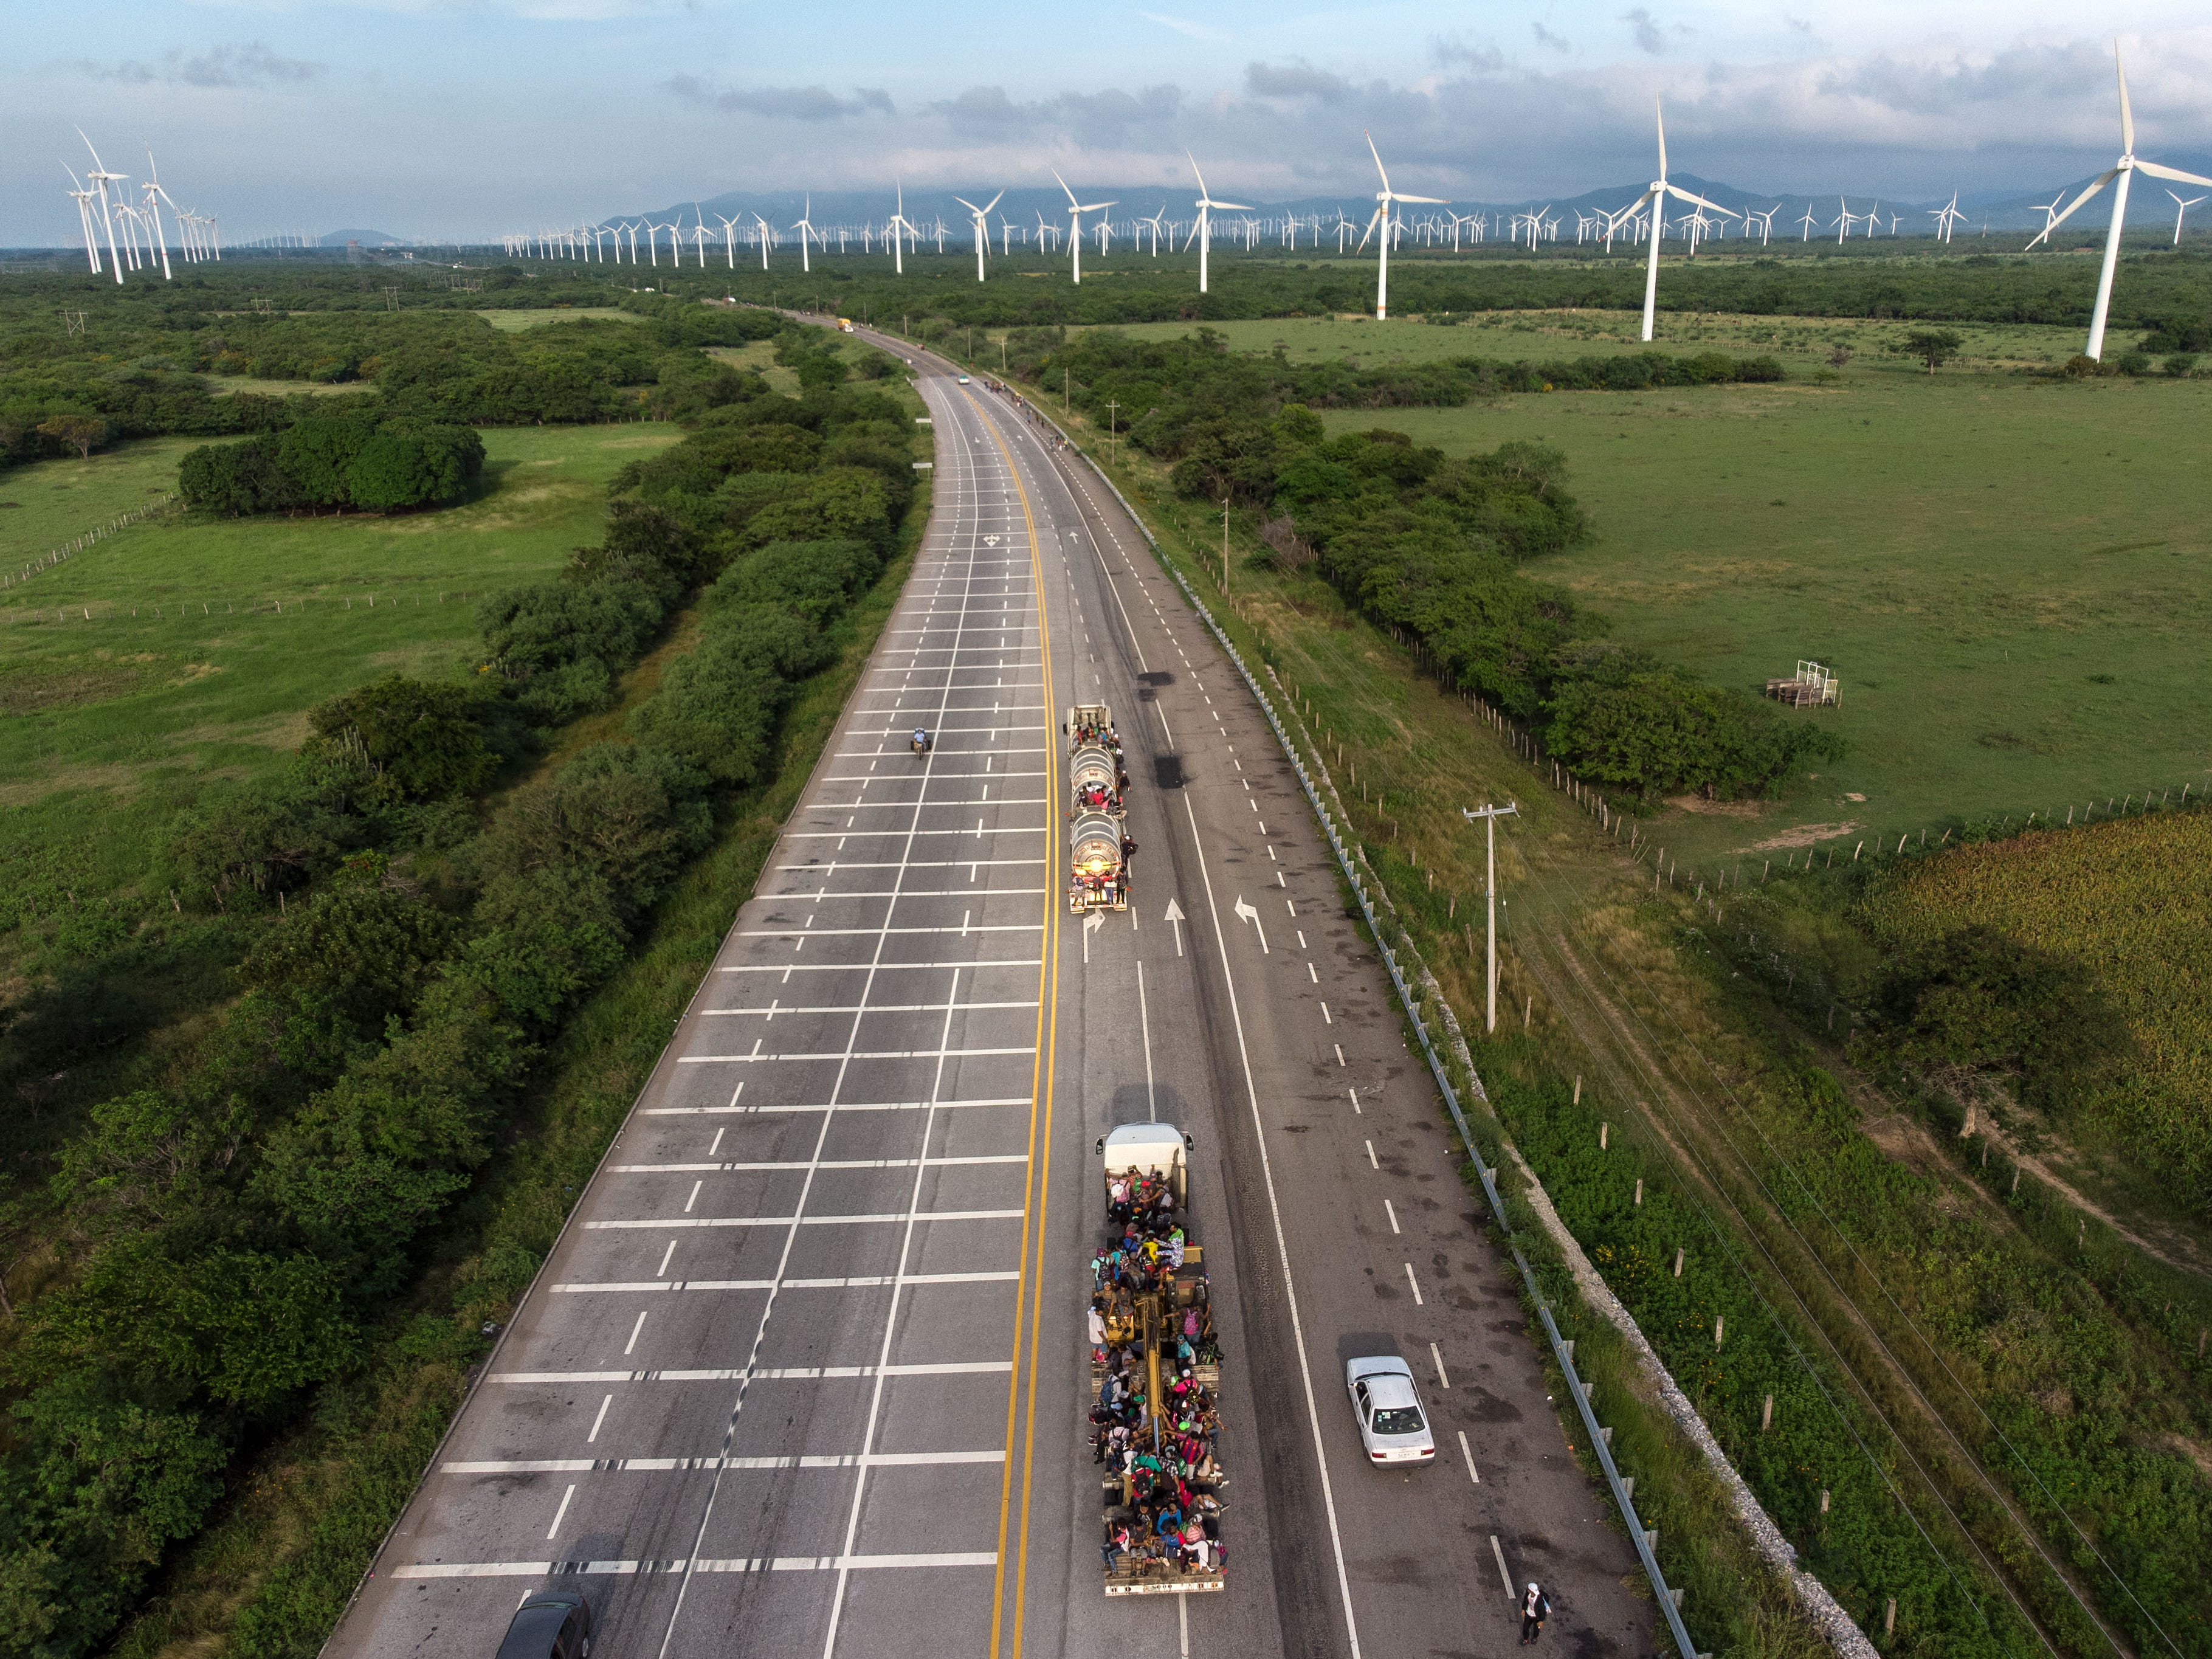 Aerial view shows trucks carrying mostly Honduran migrants taking part in a caravan heading to the U.S. pass near a wind farm on their way from Santiago Niltepec to Juchitan, near the town of La Blanca in Oaxaca State, Mexico, on Oct. 30, 2018. The Pentagon is deploying 5,200 active-duty troops to beef up security along the U.S.-Mexico border, officials announced Monday, in a bid to prevent a caravan of Central American migrants from illegally crossing the frontier.